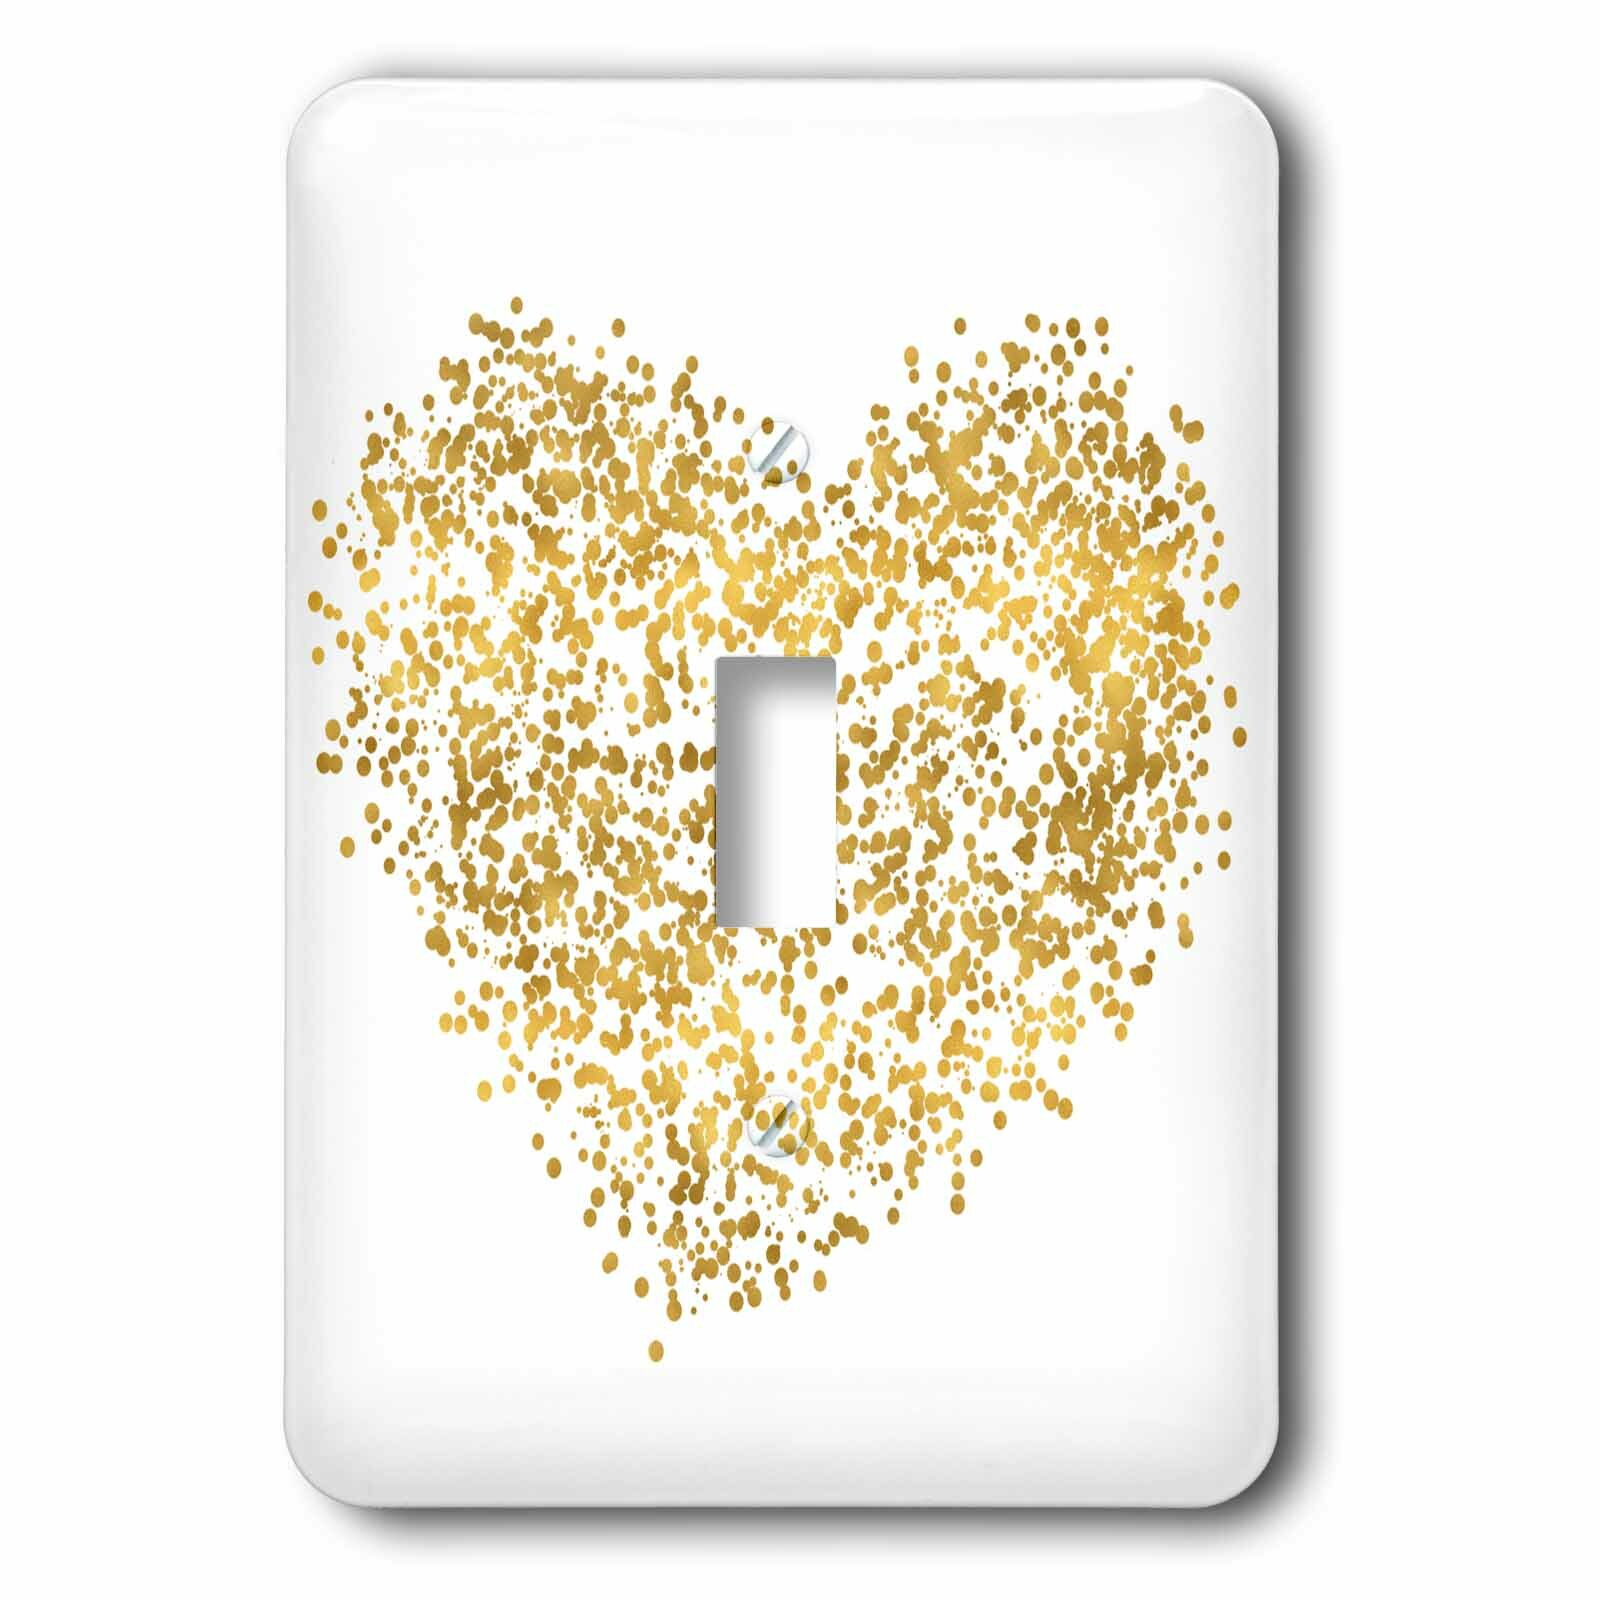 3drose Dotted Heart 1 Gang Toggle Light Switch Wall Plate Wayfair